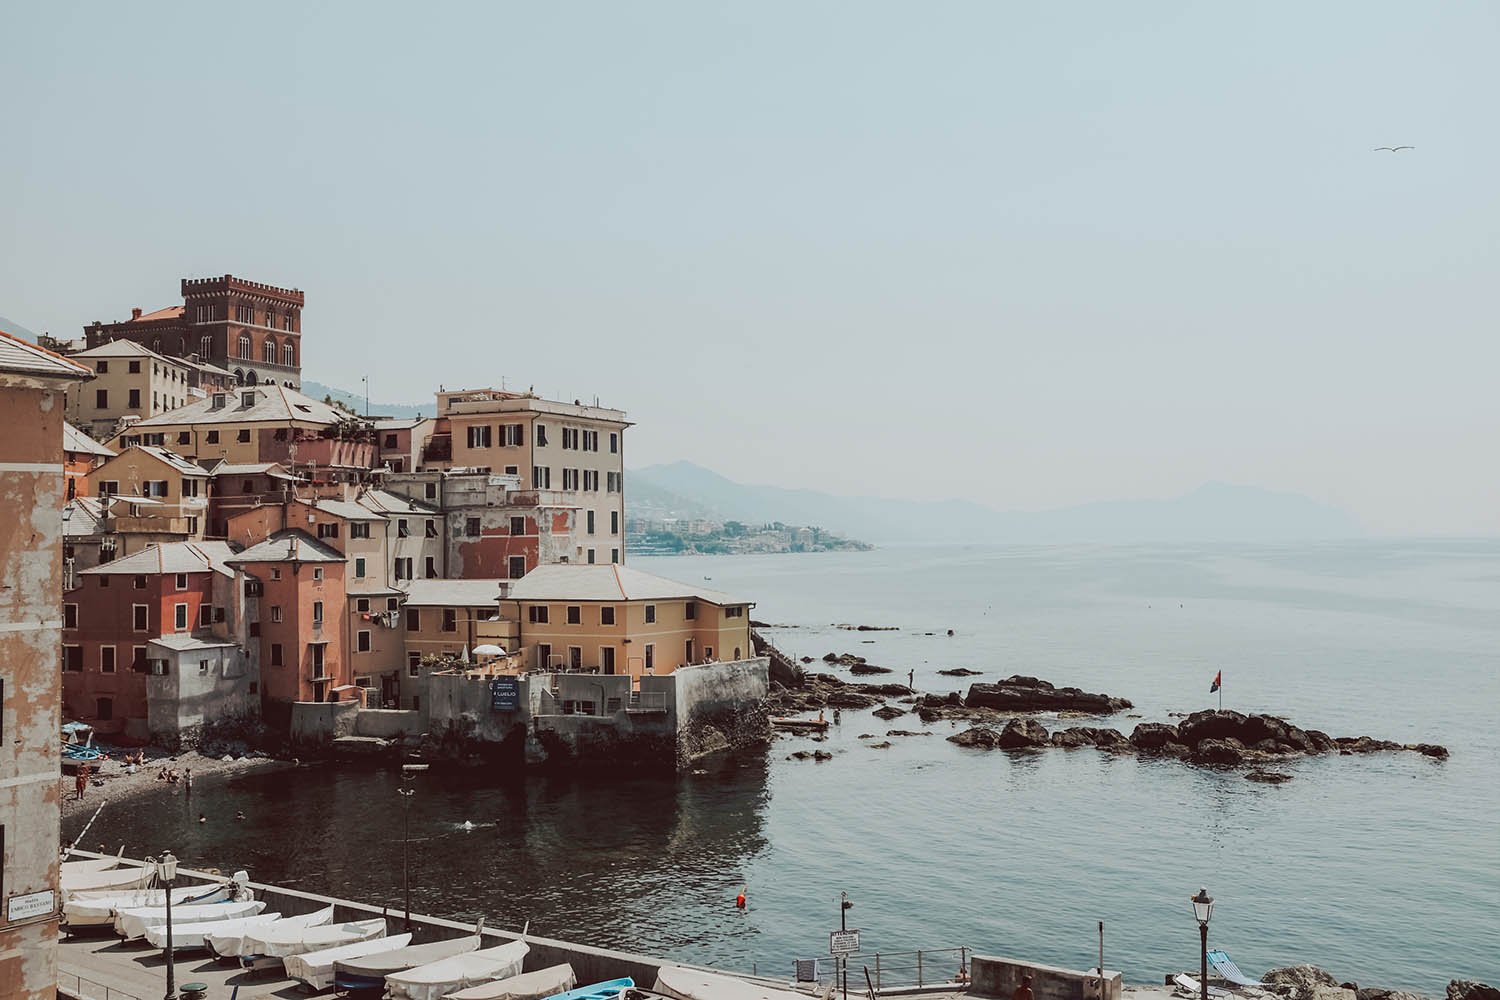 Genoa Travel Blog - 9 Fun Things To do in Genoa. Boccadasse  Day Trips From Genoa